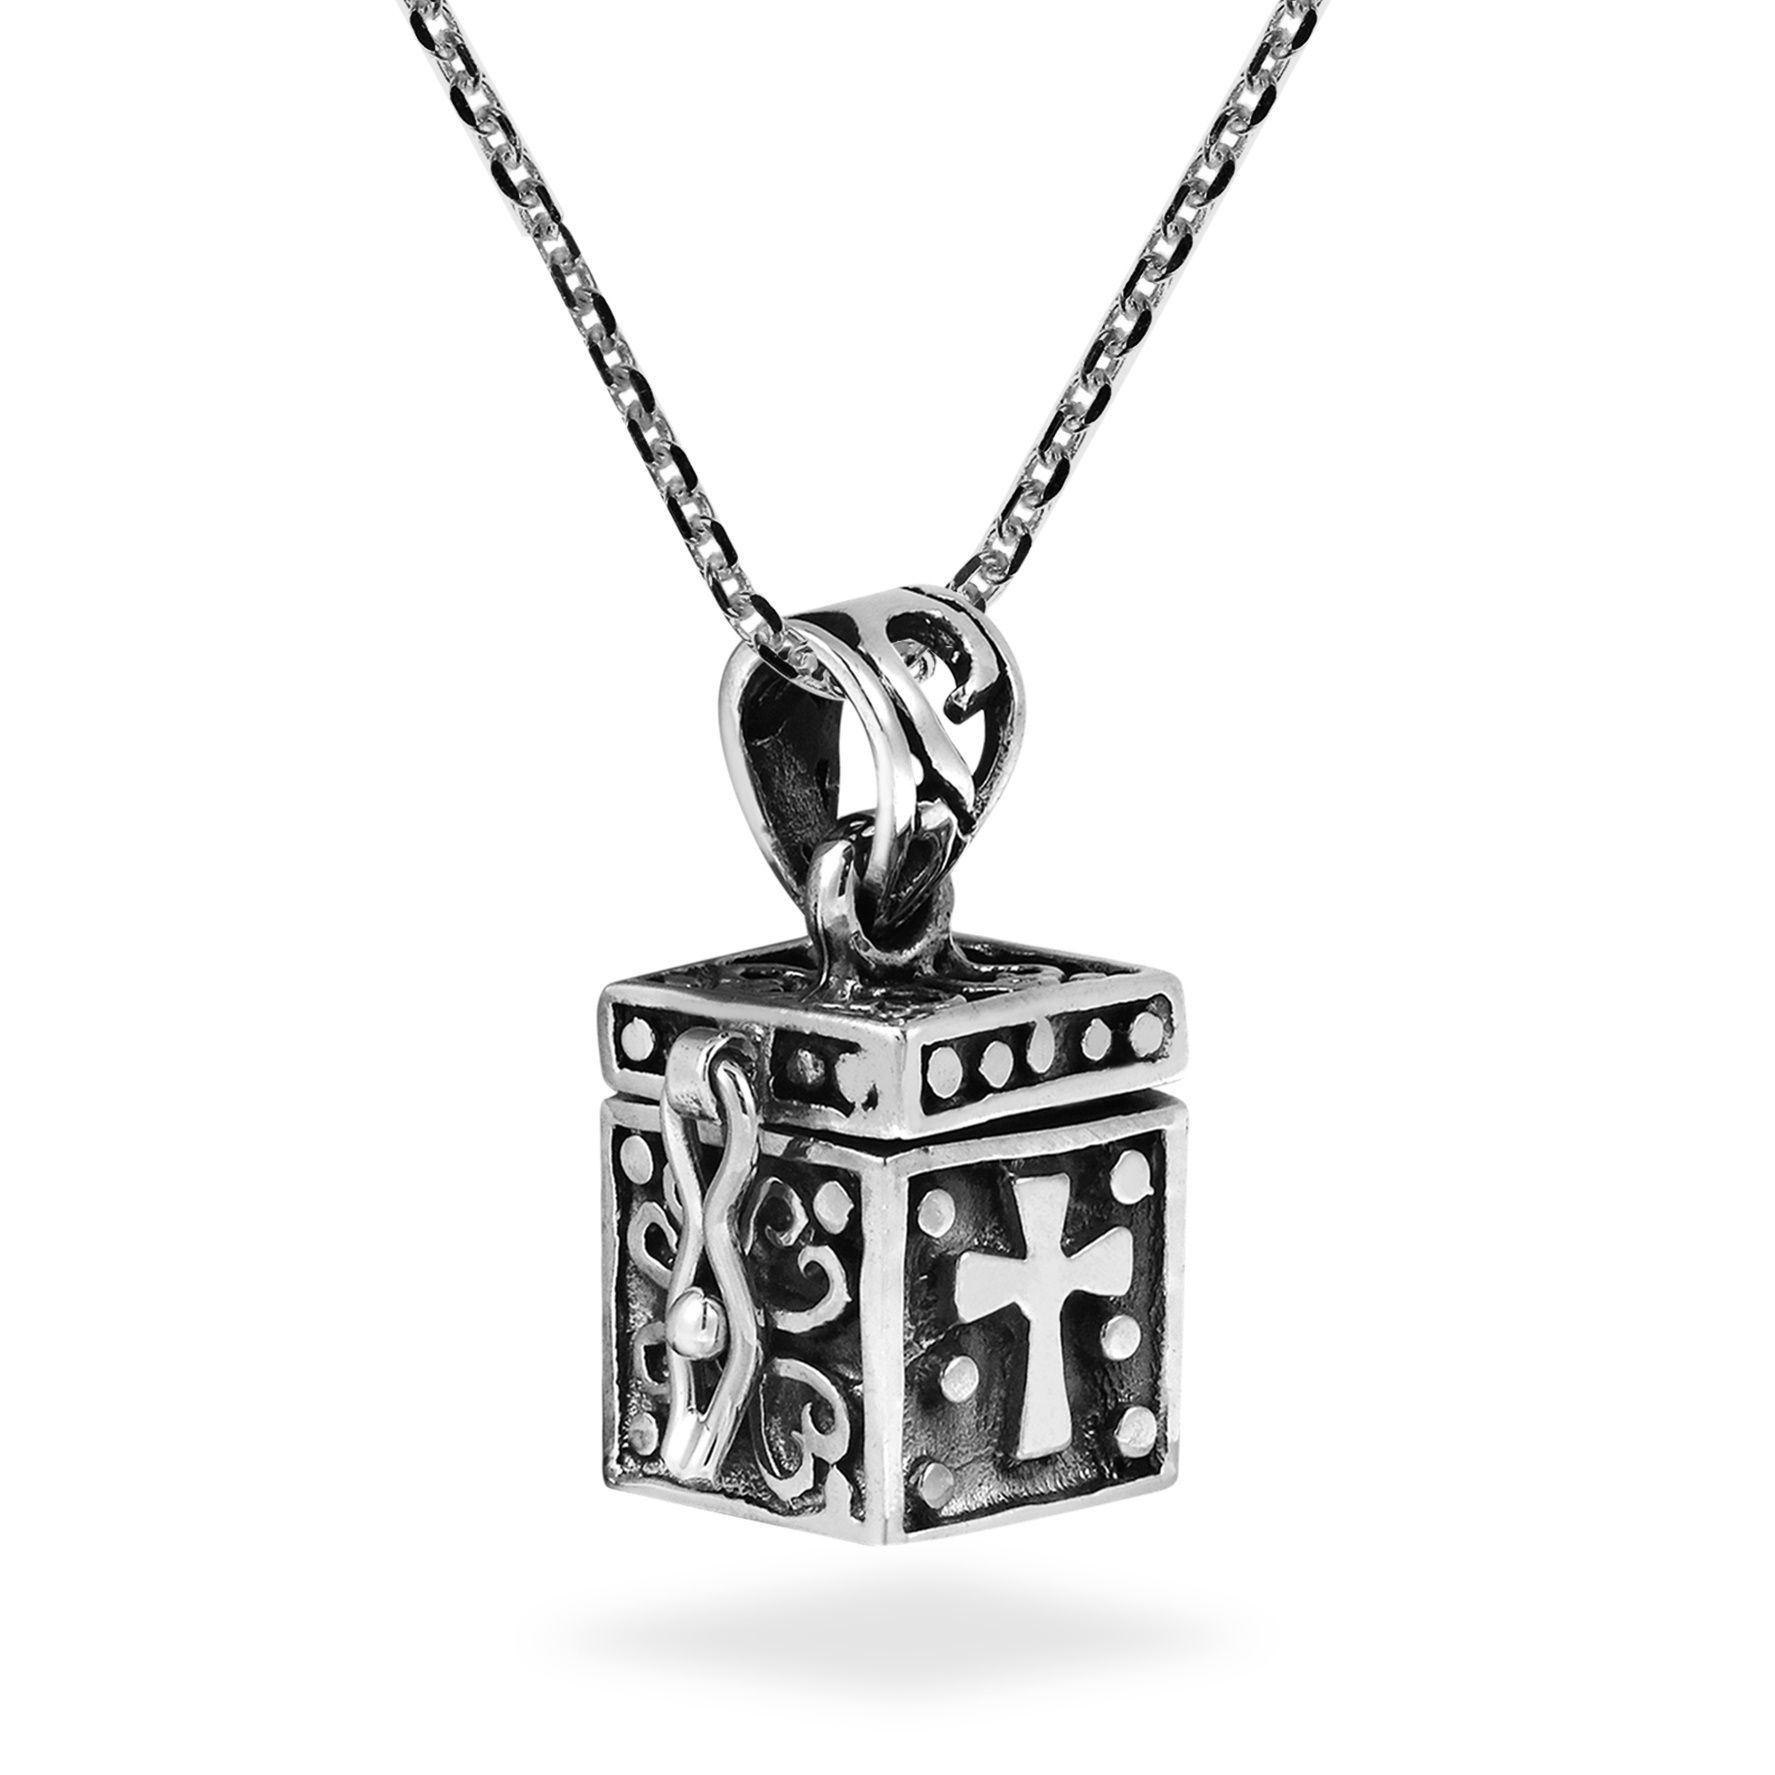 Handmade Christian Prayer Box Locket .925 Sterling Silver Necklace Pertaining To Most Current Shimmering Knot Locket Element Necklaces (Gallery 19 of 25)